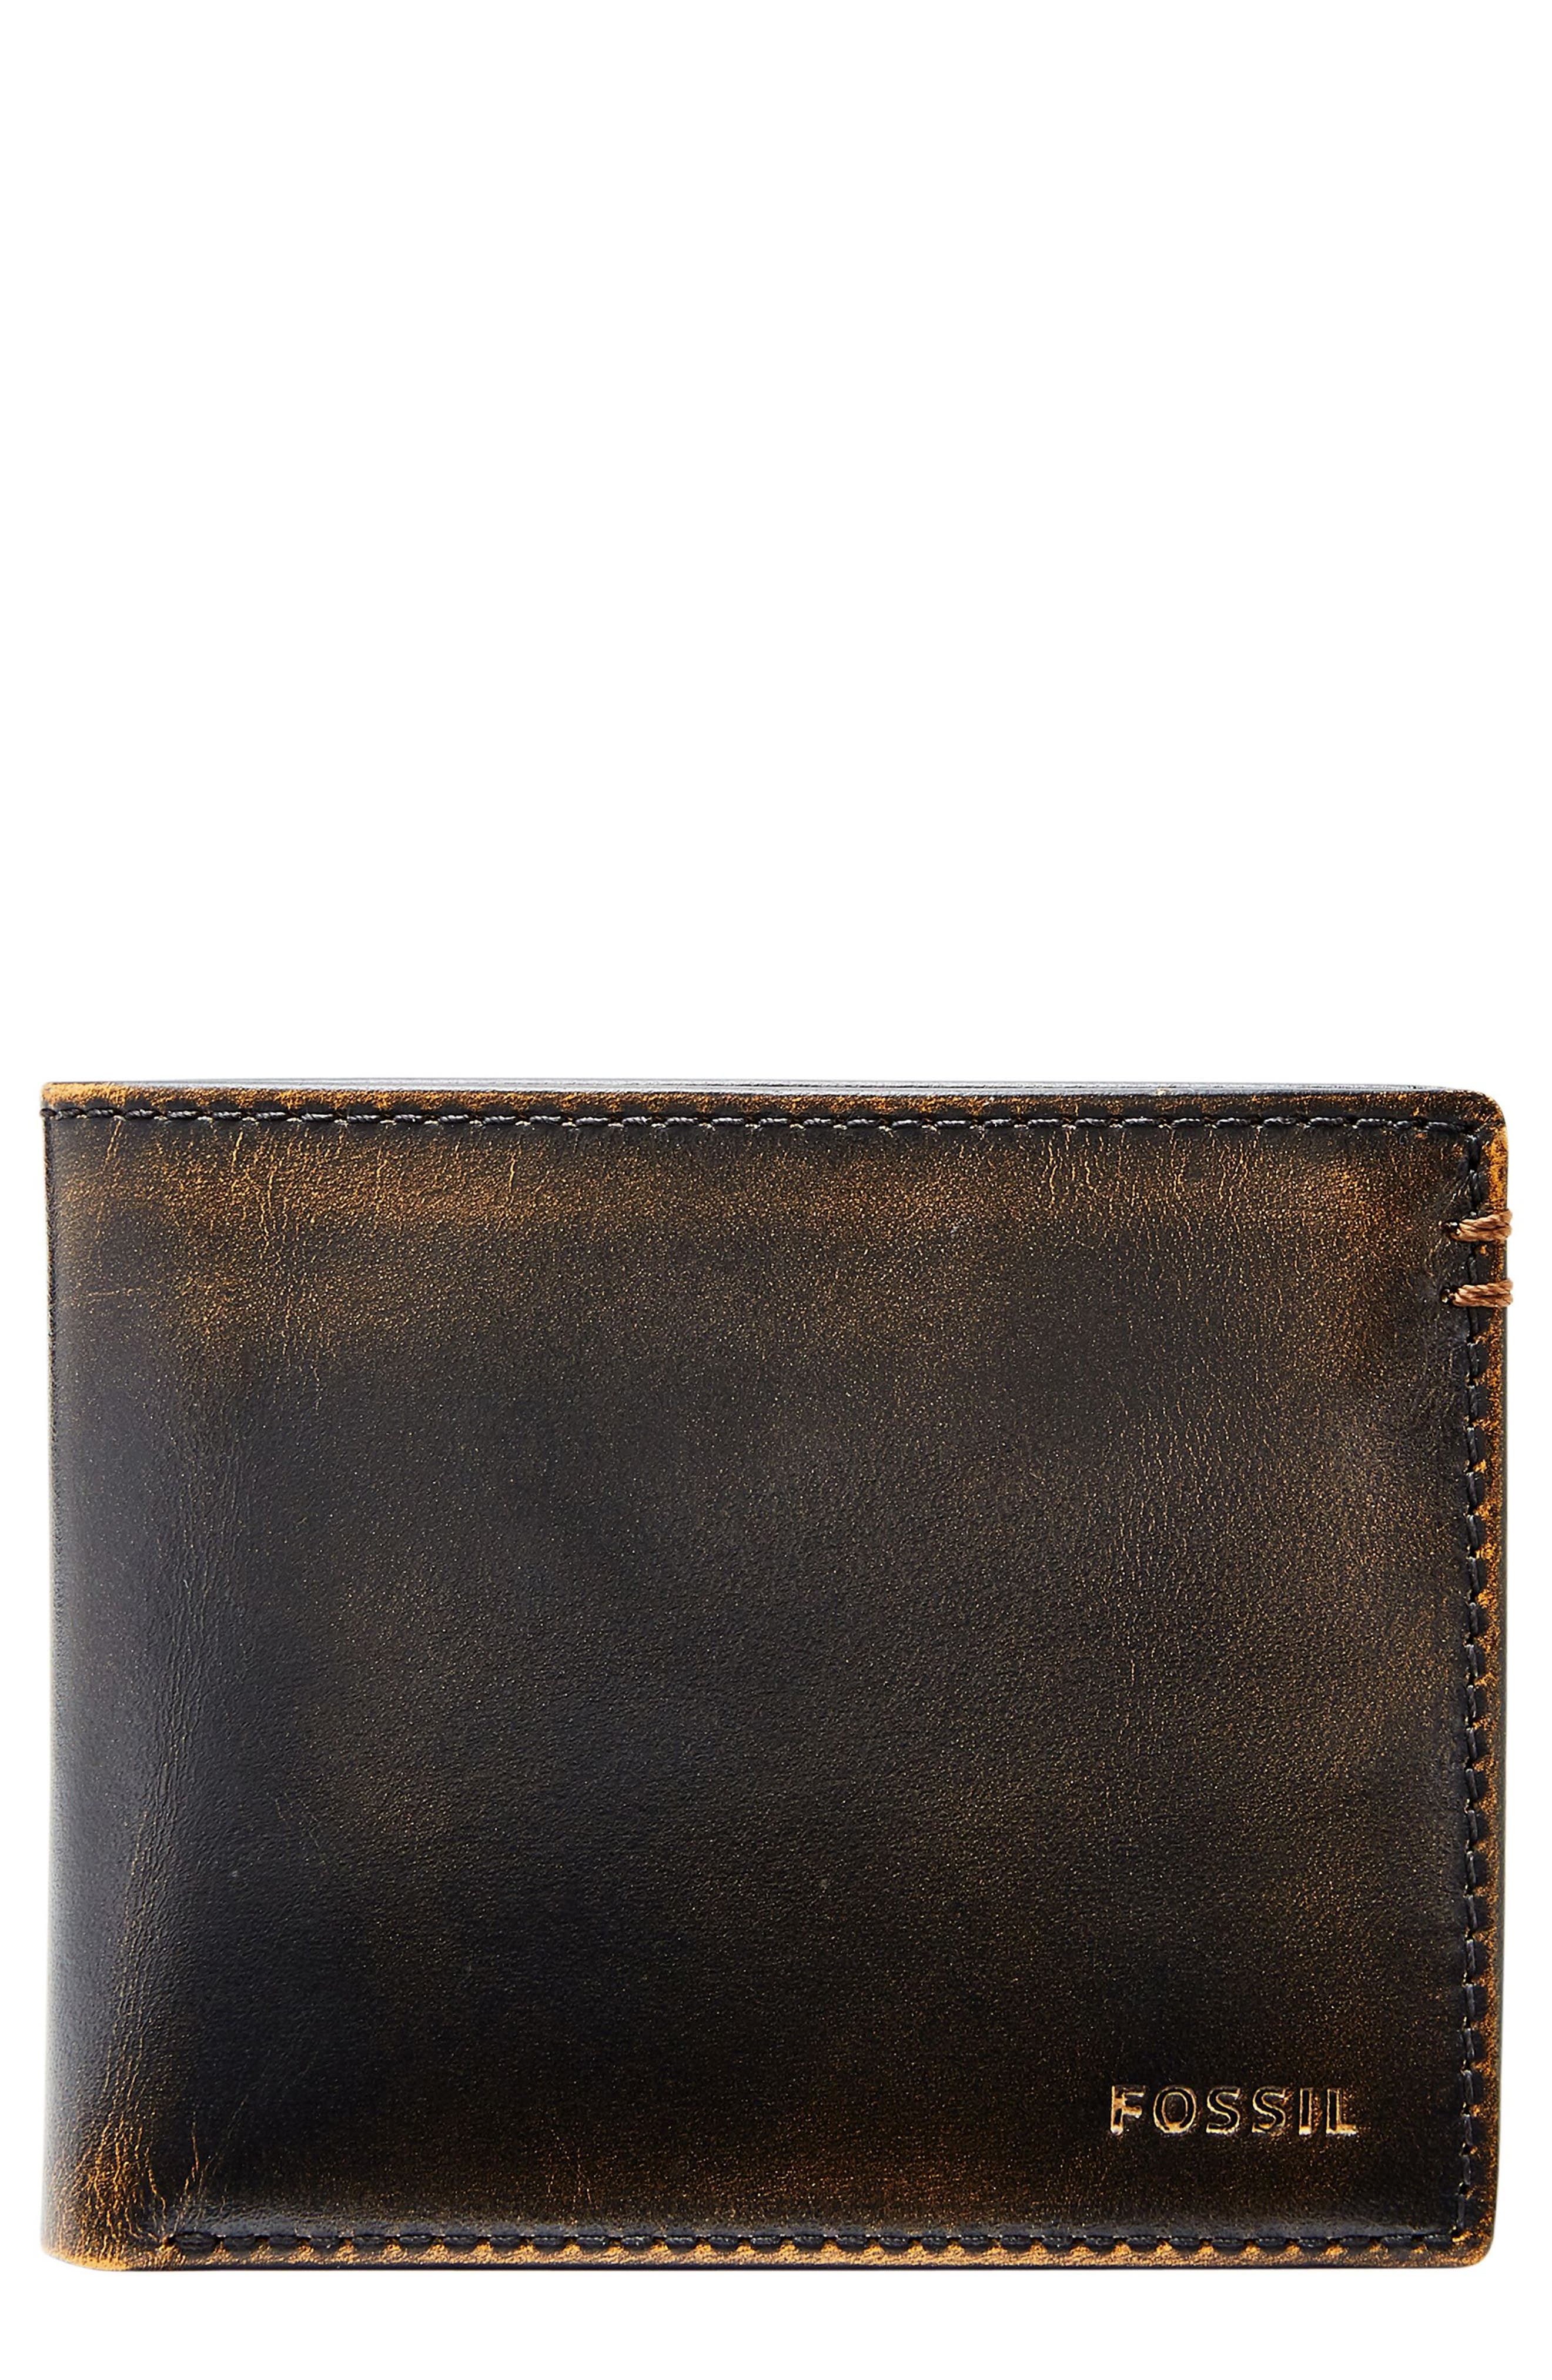 FOSSIL Wade Leather Wallet, Main, color, BLACK